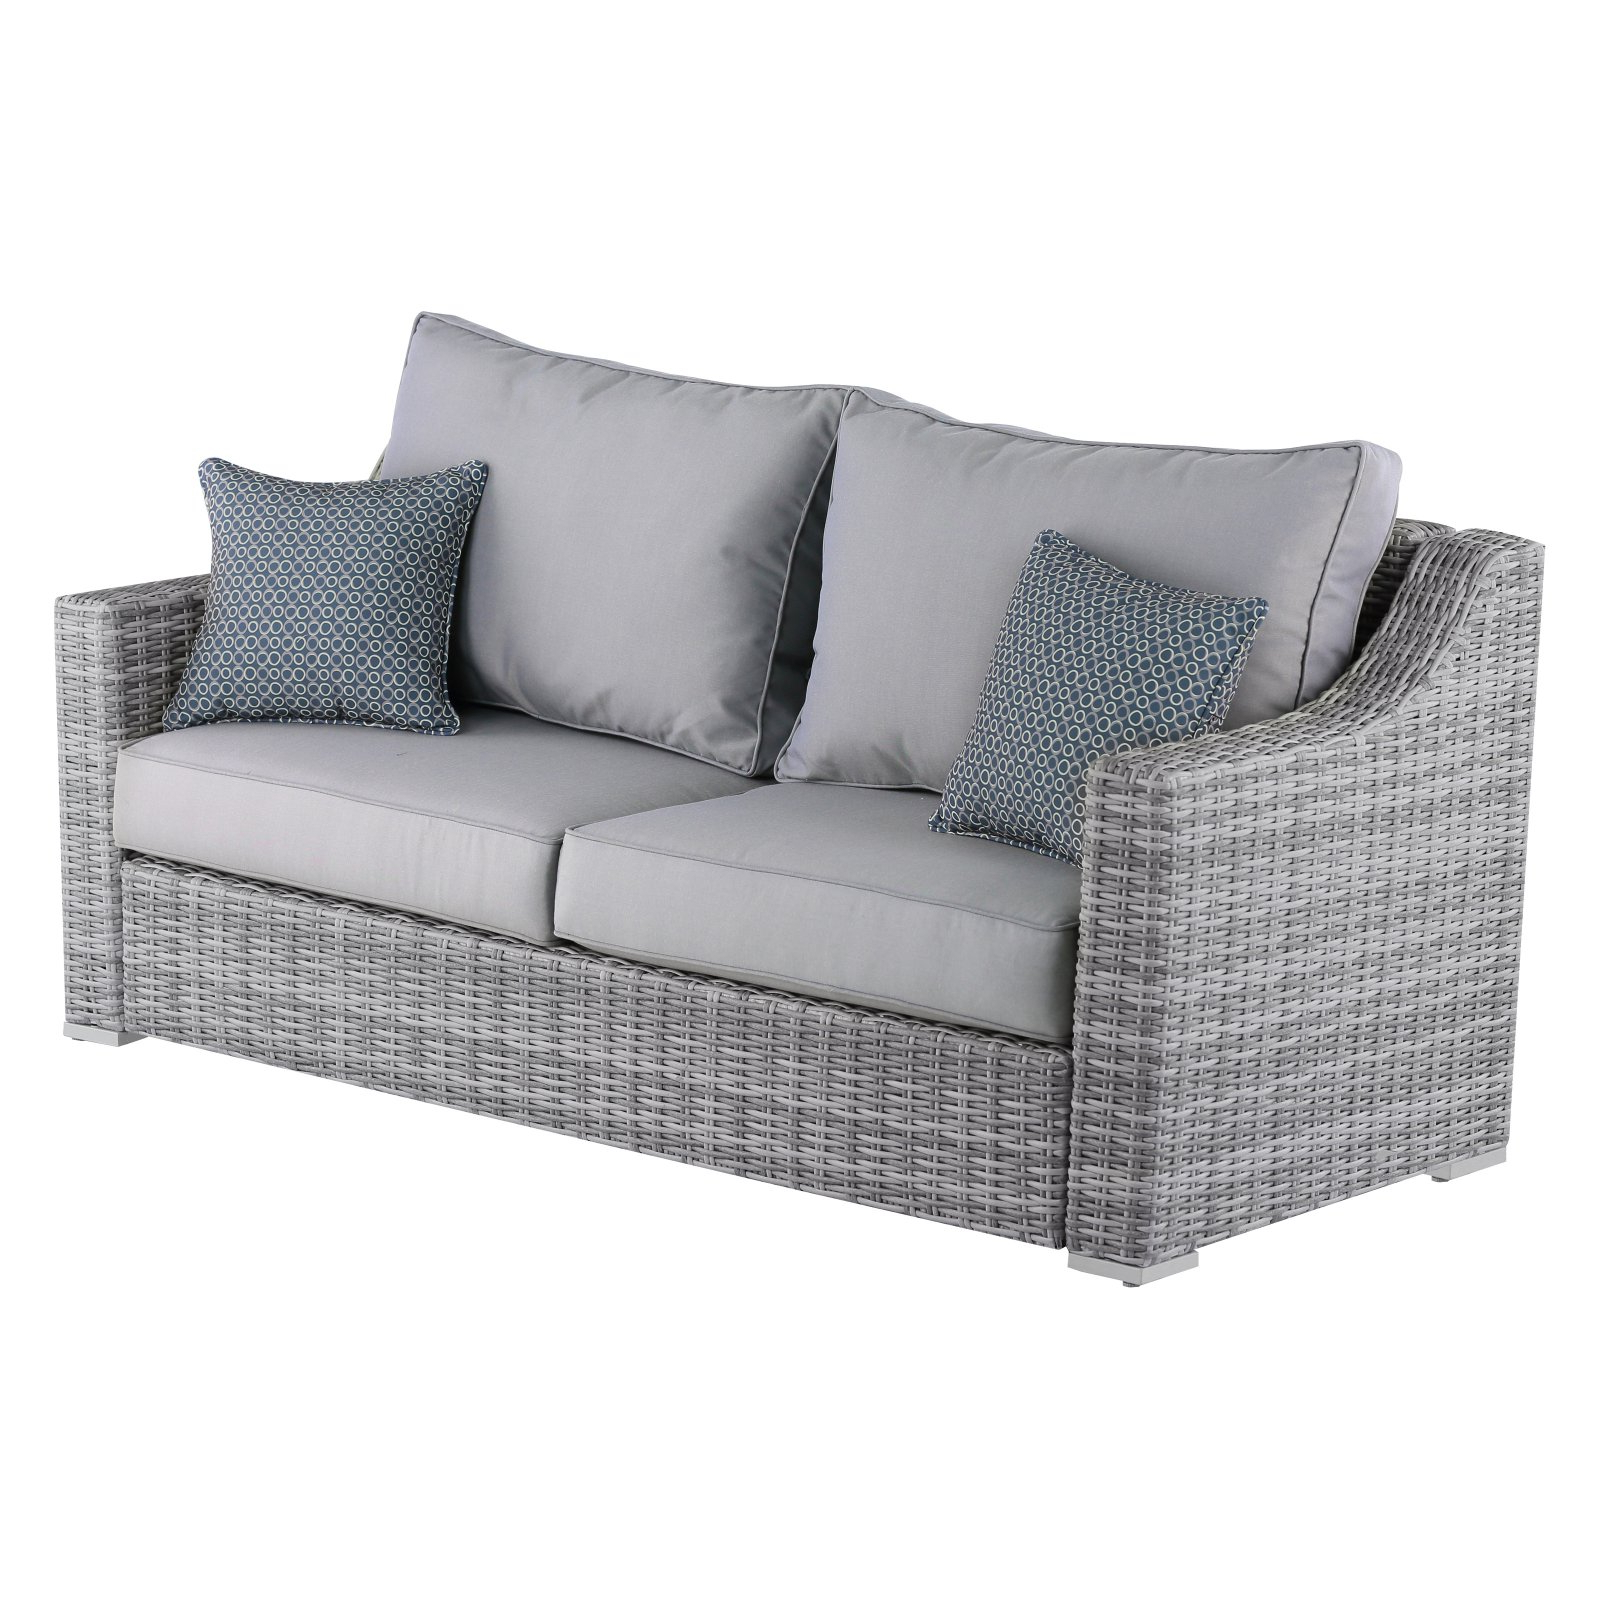 Newest Outdoor Elle Decor Vallauris Wicker Patio Sofa (View 14 of 20)